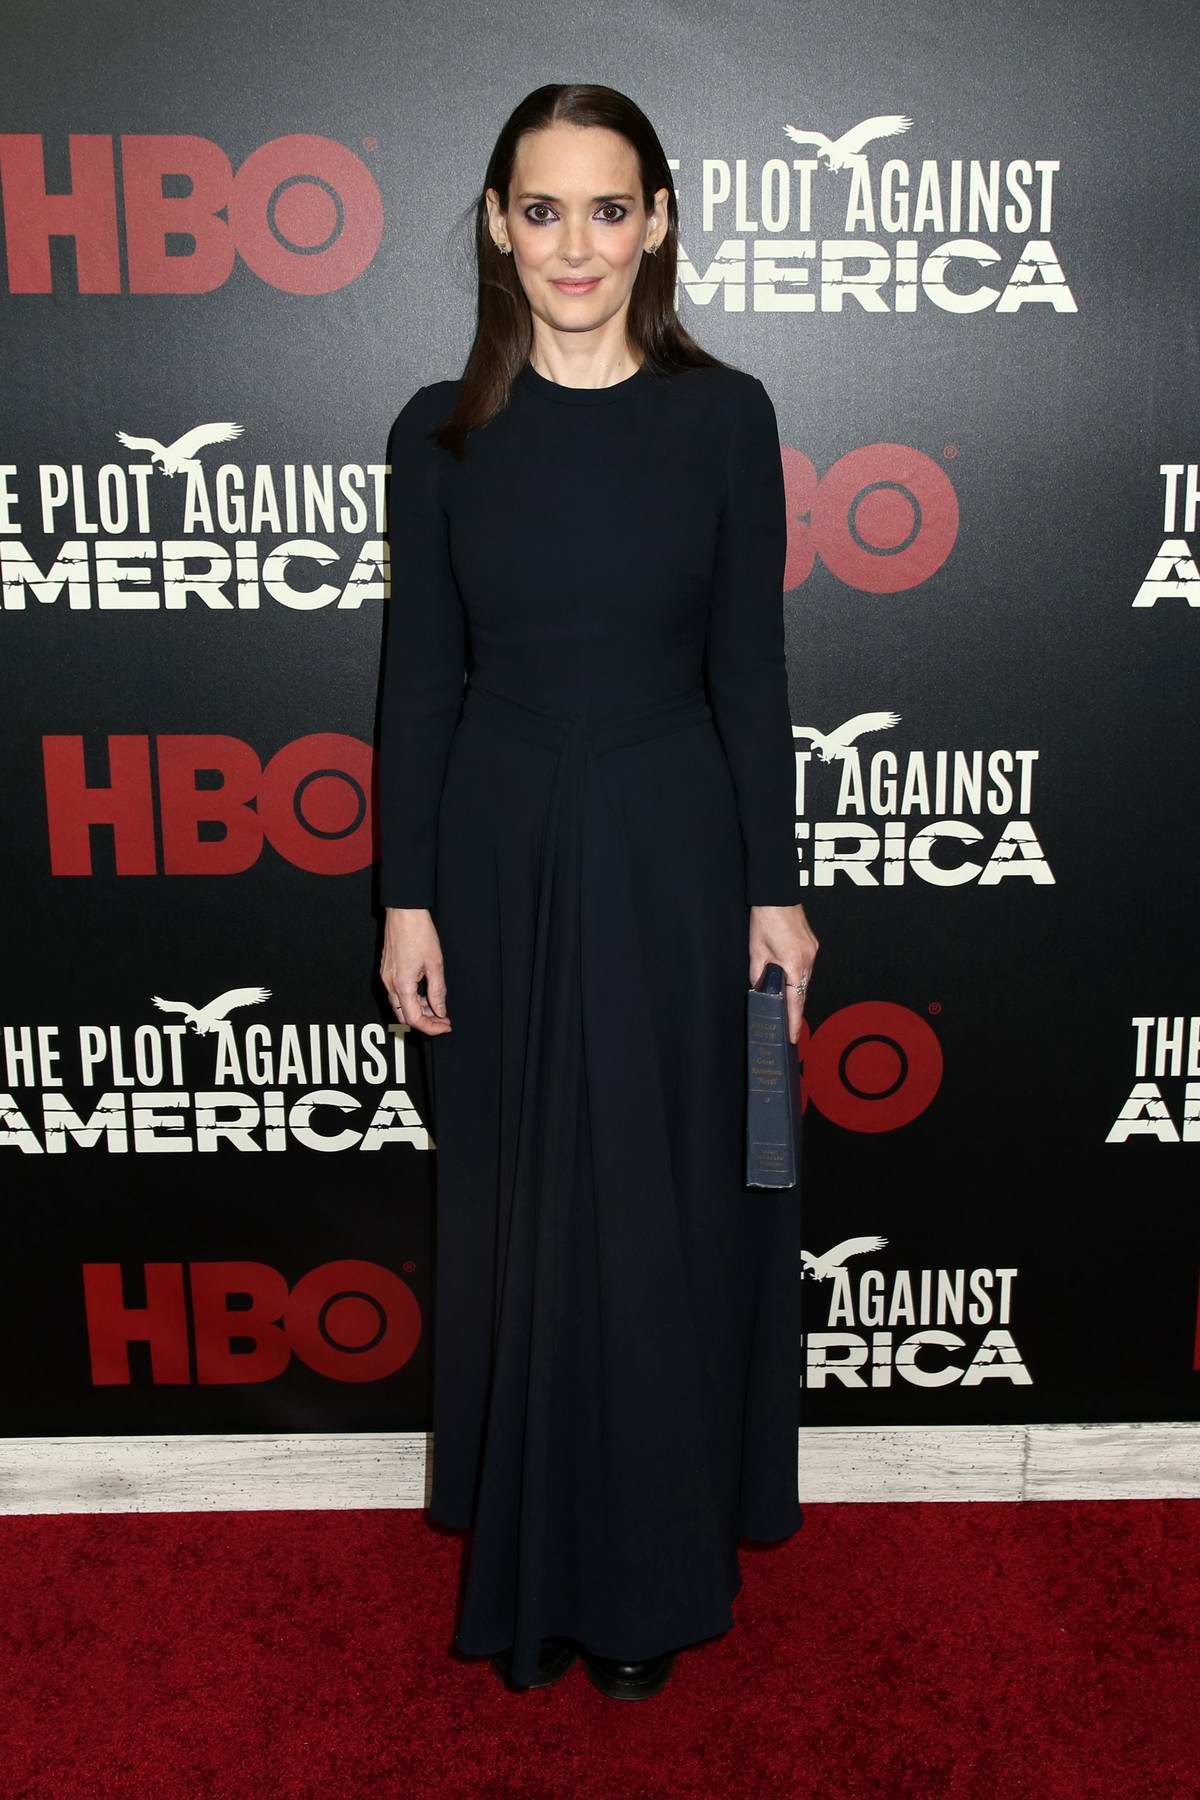 Winona Ryder attends the Premiere of 'The Plot Against America' in New York City